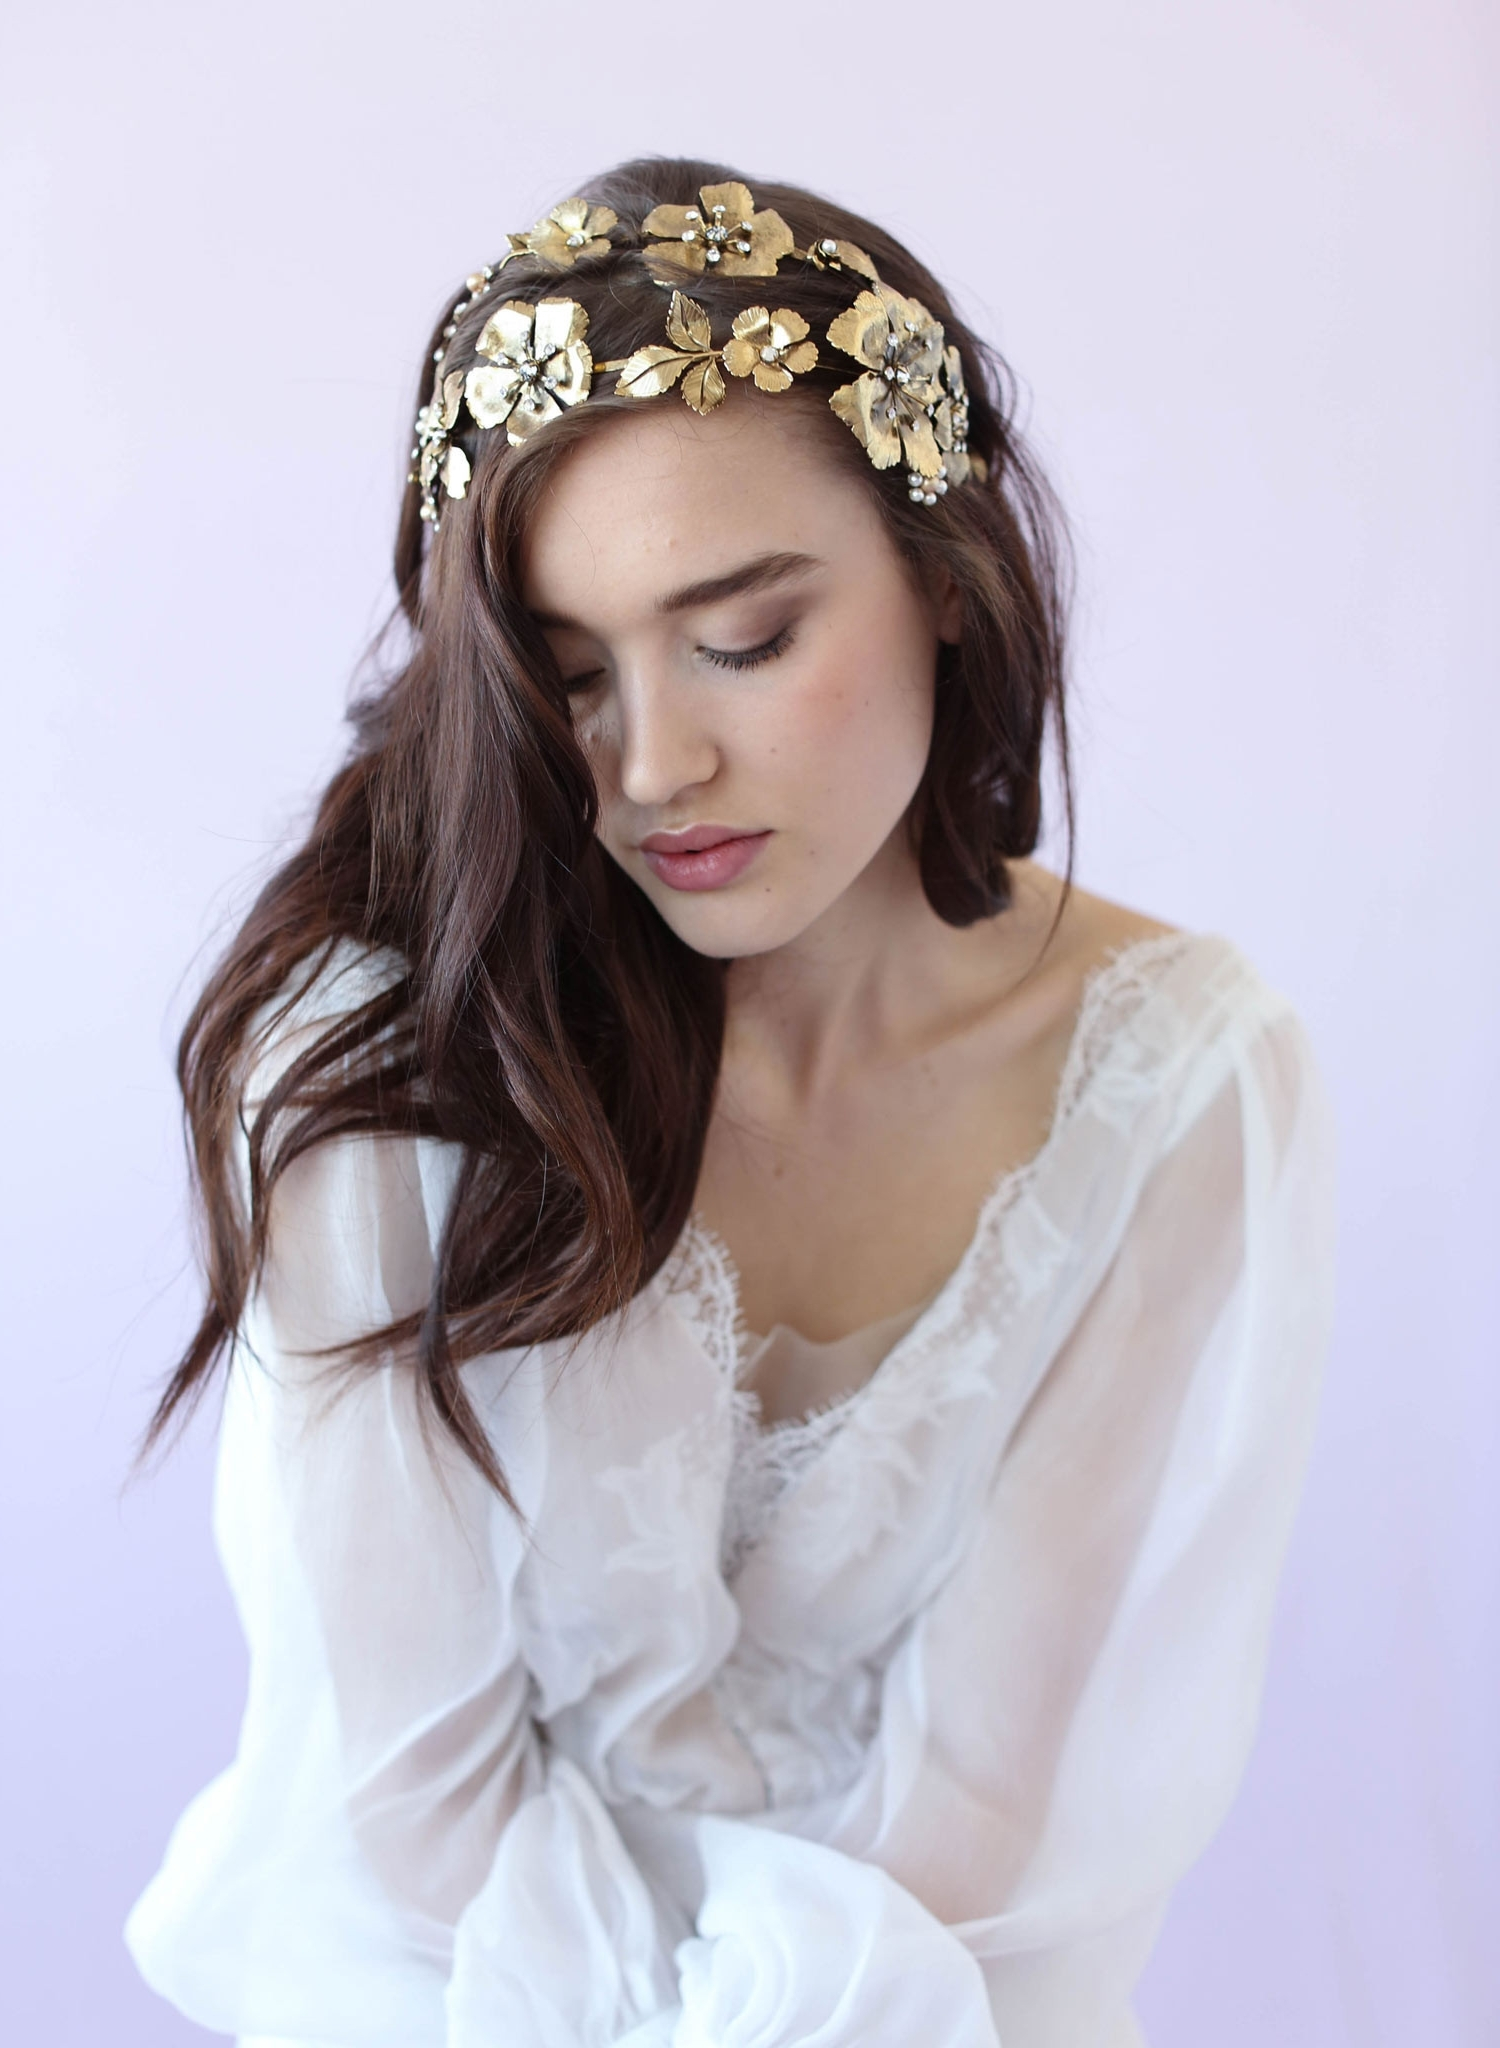 24 Fabulous Vintage Wedding Hair Accessories For A Glam Bride Pertaining To Favorite Wedding Hairstyles With Accessories (View 2 of 15)